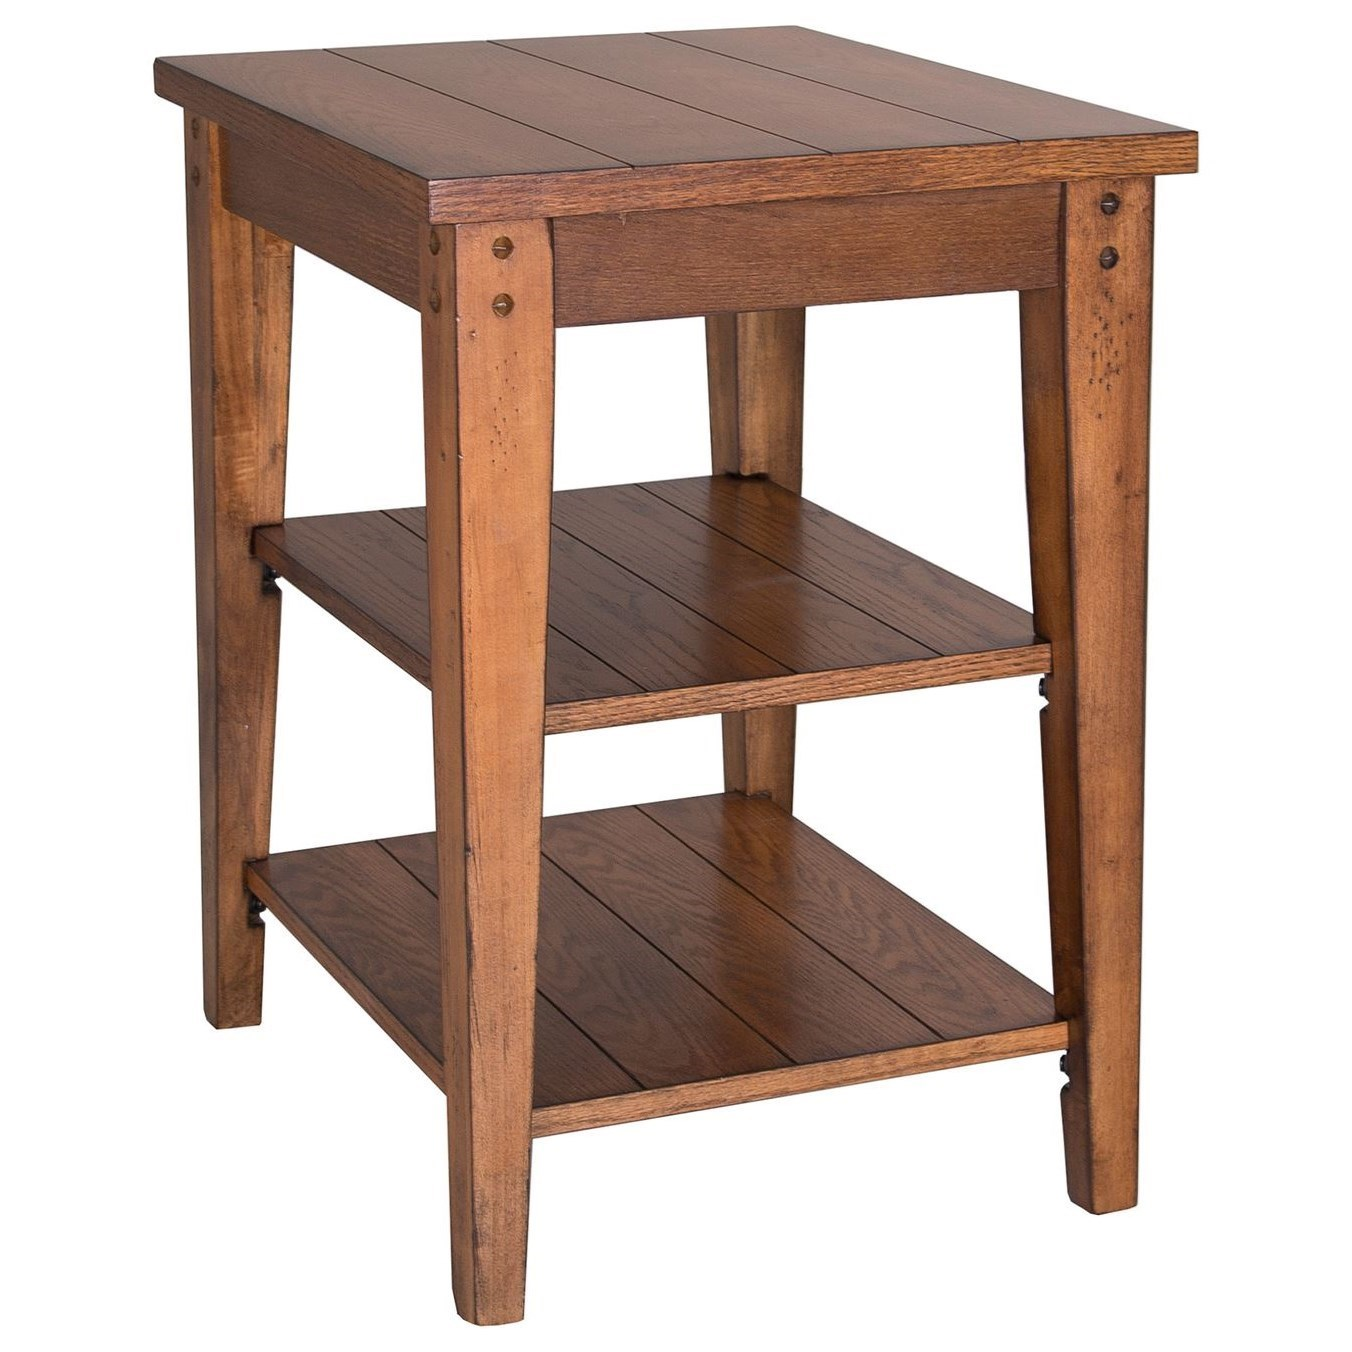 Lake House Tiered Table by Libby at Walker's Furniture